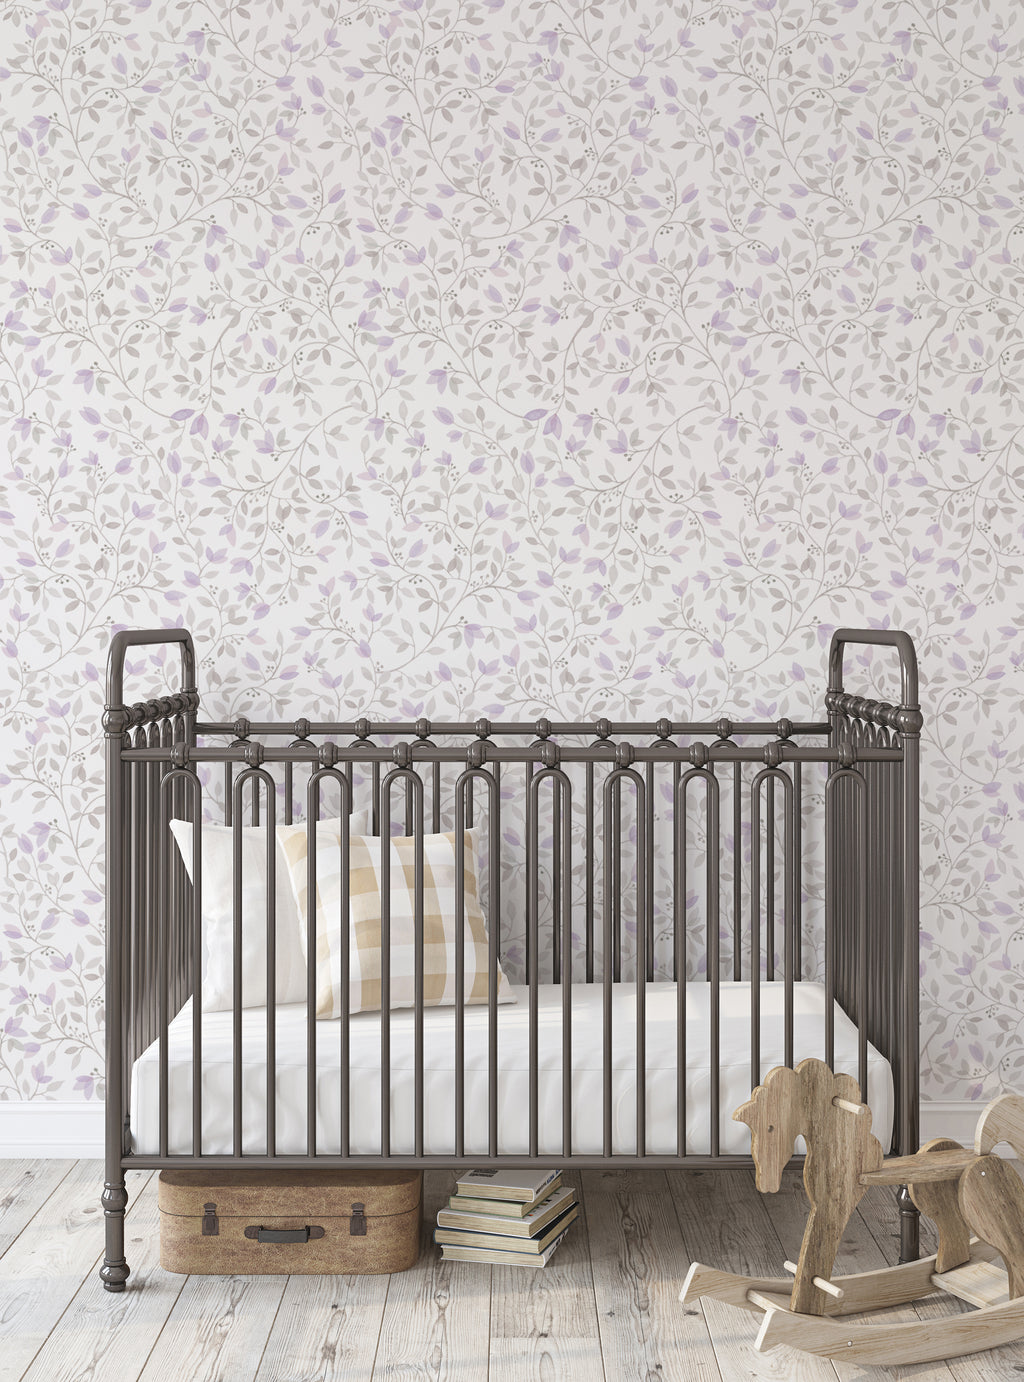 Floral Vines Watercolor Wallpaper - Peel and Stick